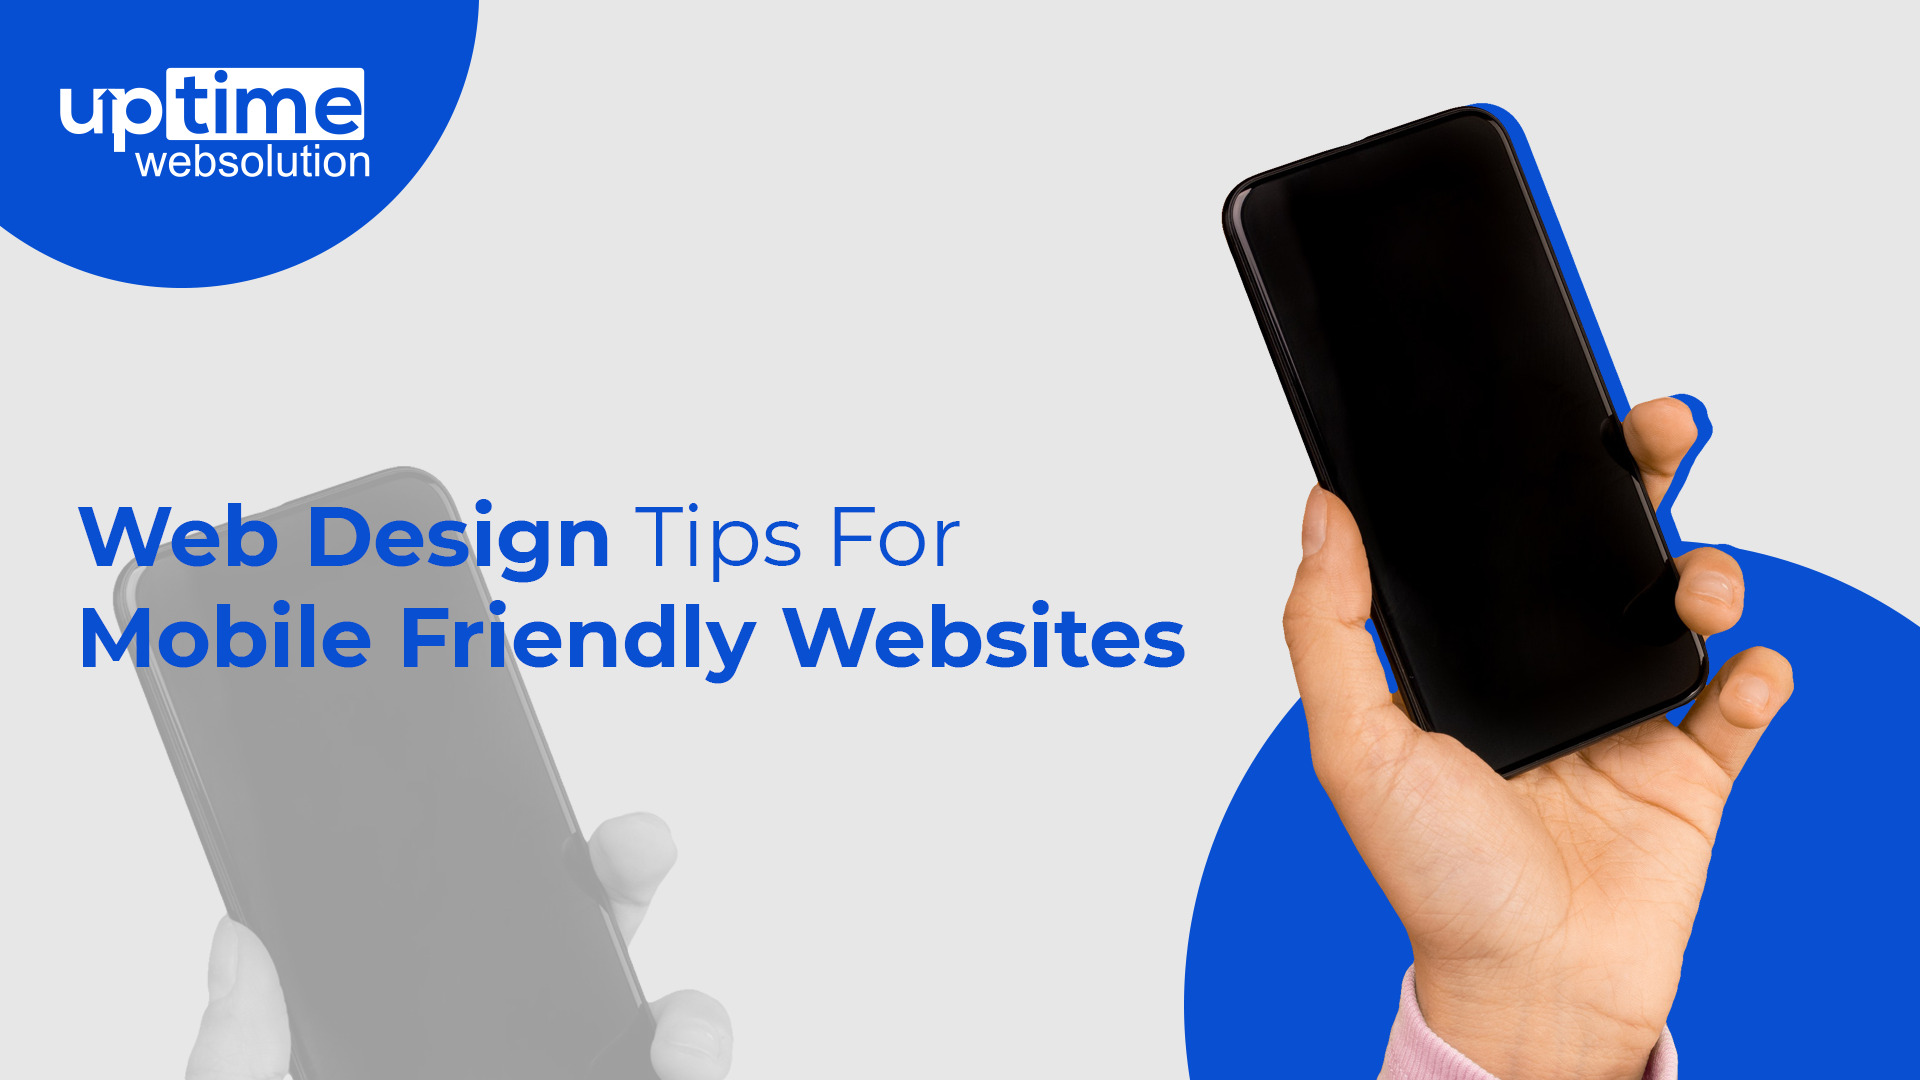 web design tips for mobile friendly websites